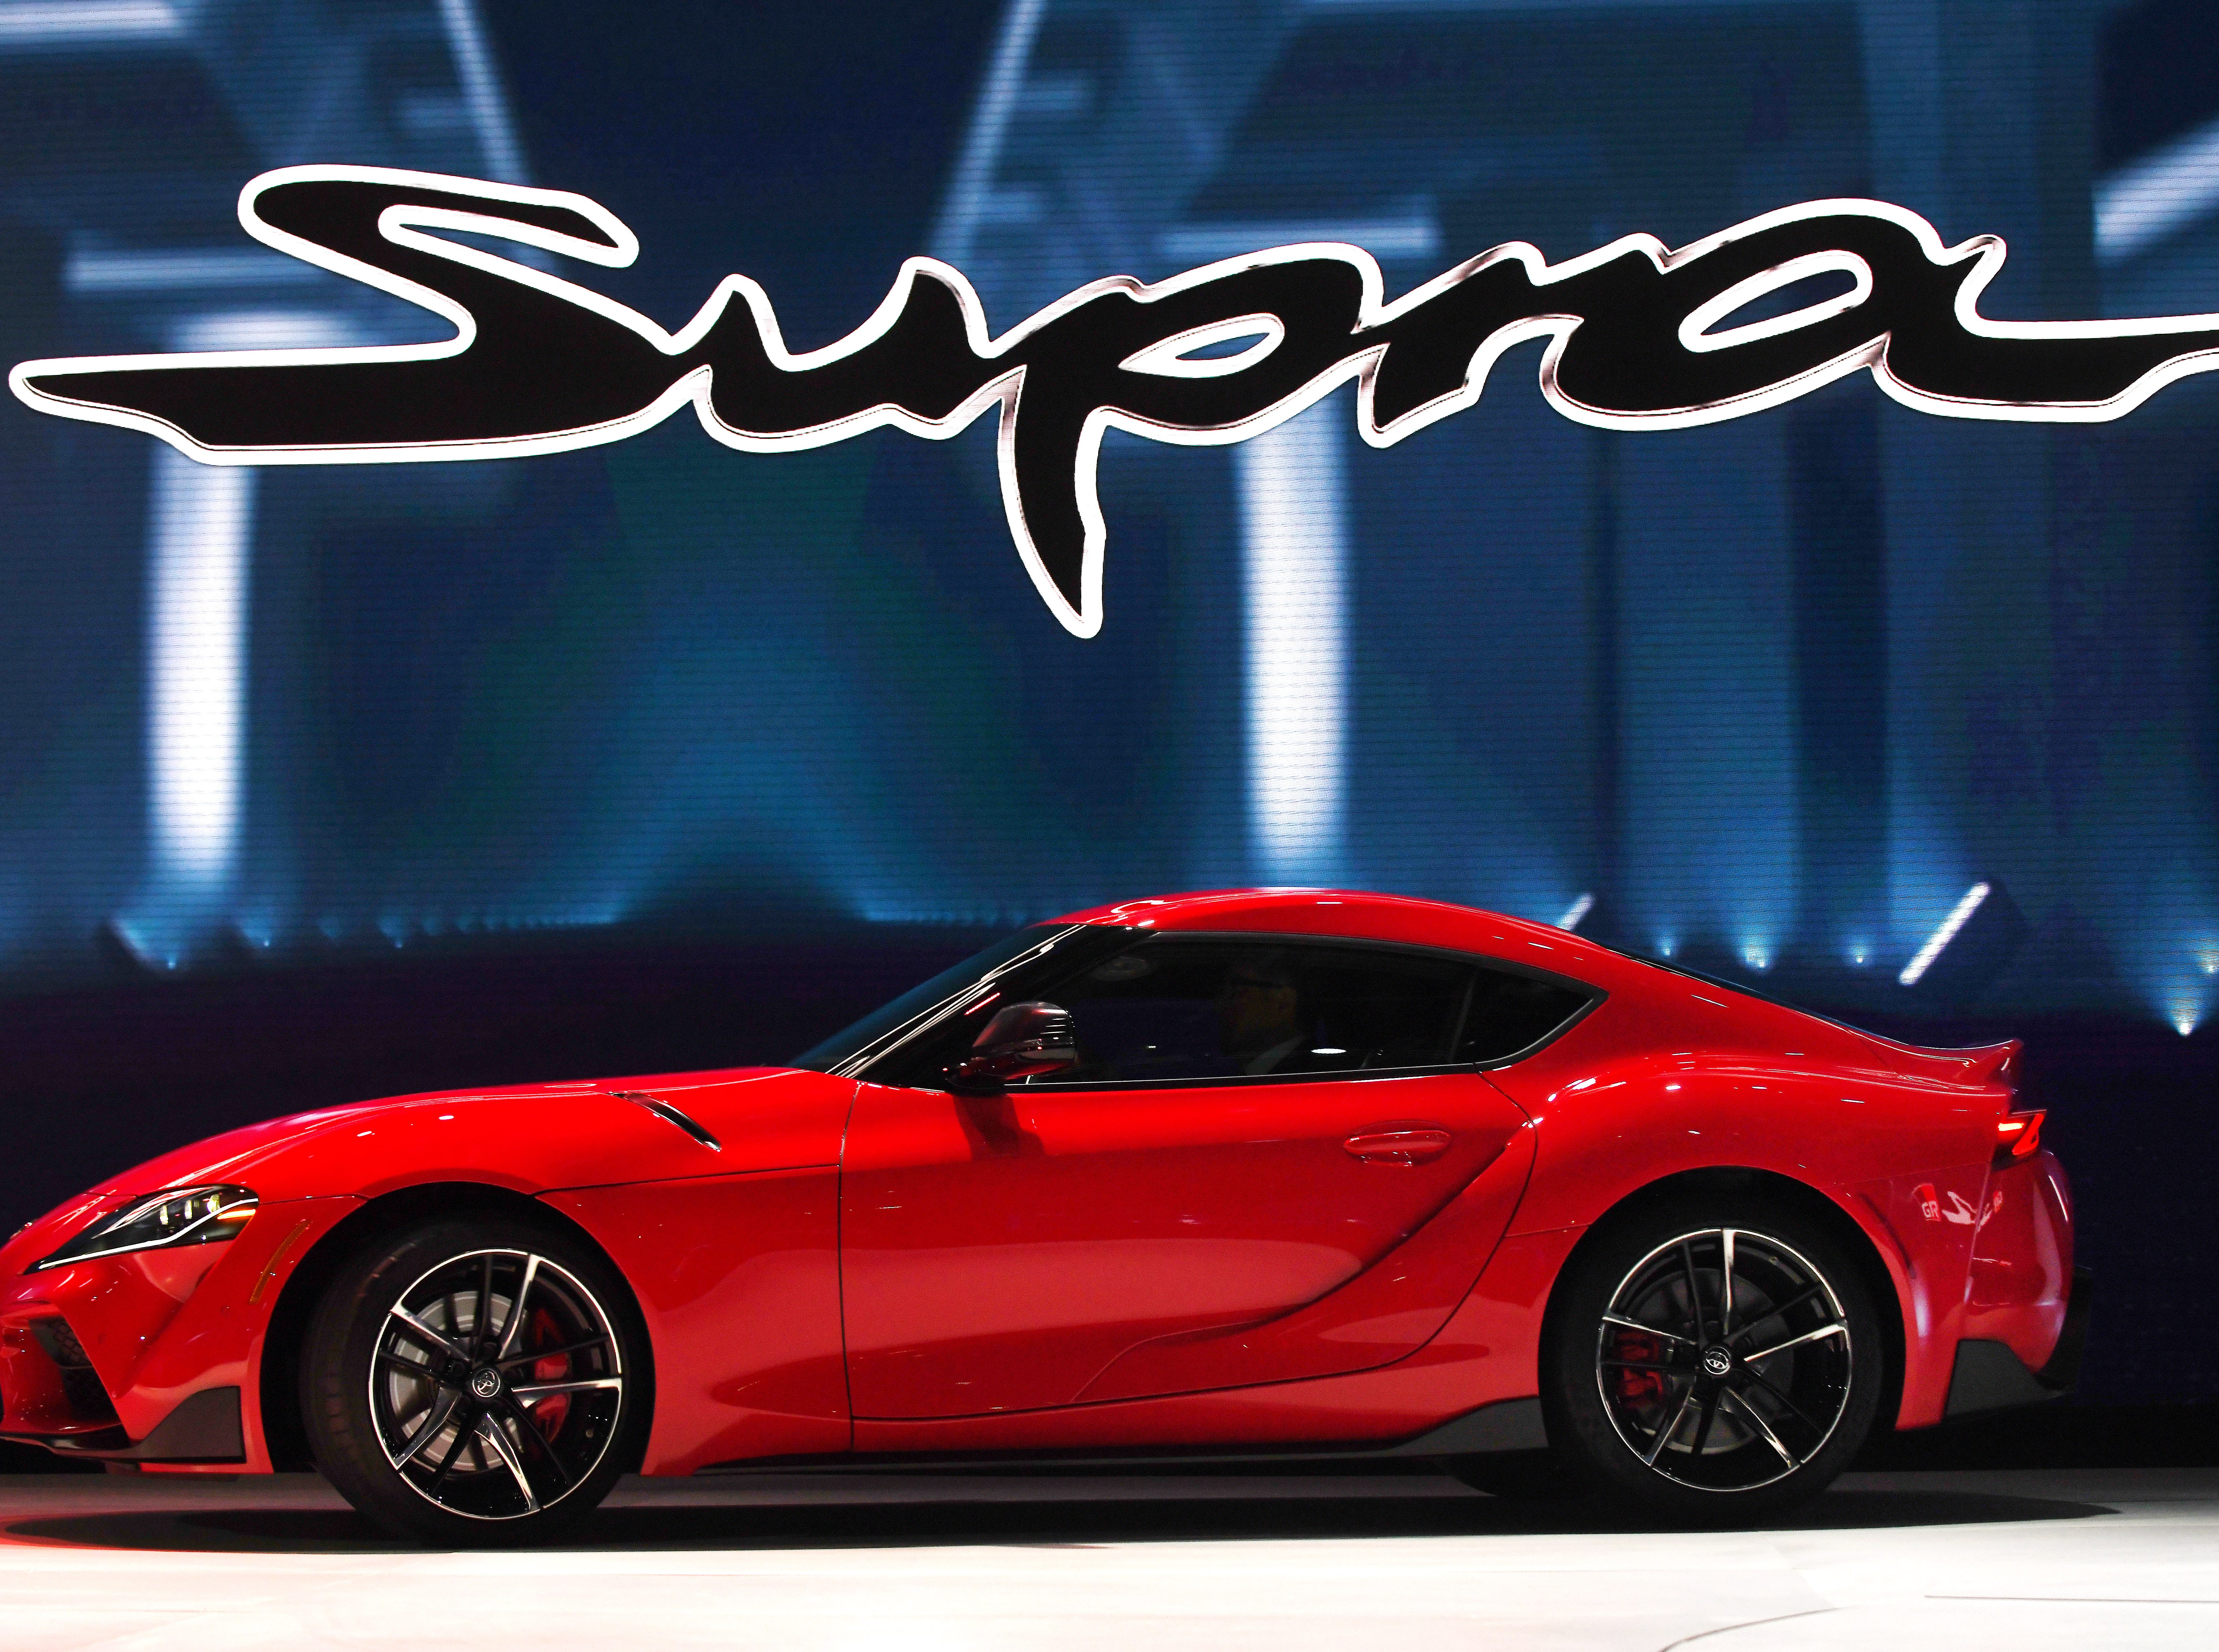 The 2020 Toyota Supra is revealed at the North American International Auto Show media preview day at Cobo Center in Detroit on Monday, Jan. 14, 2019.